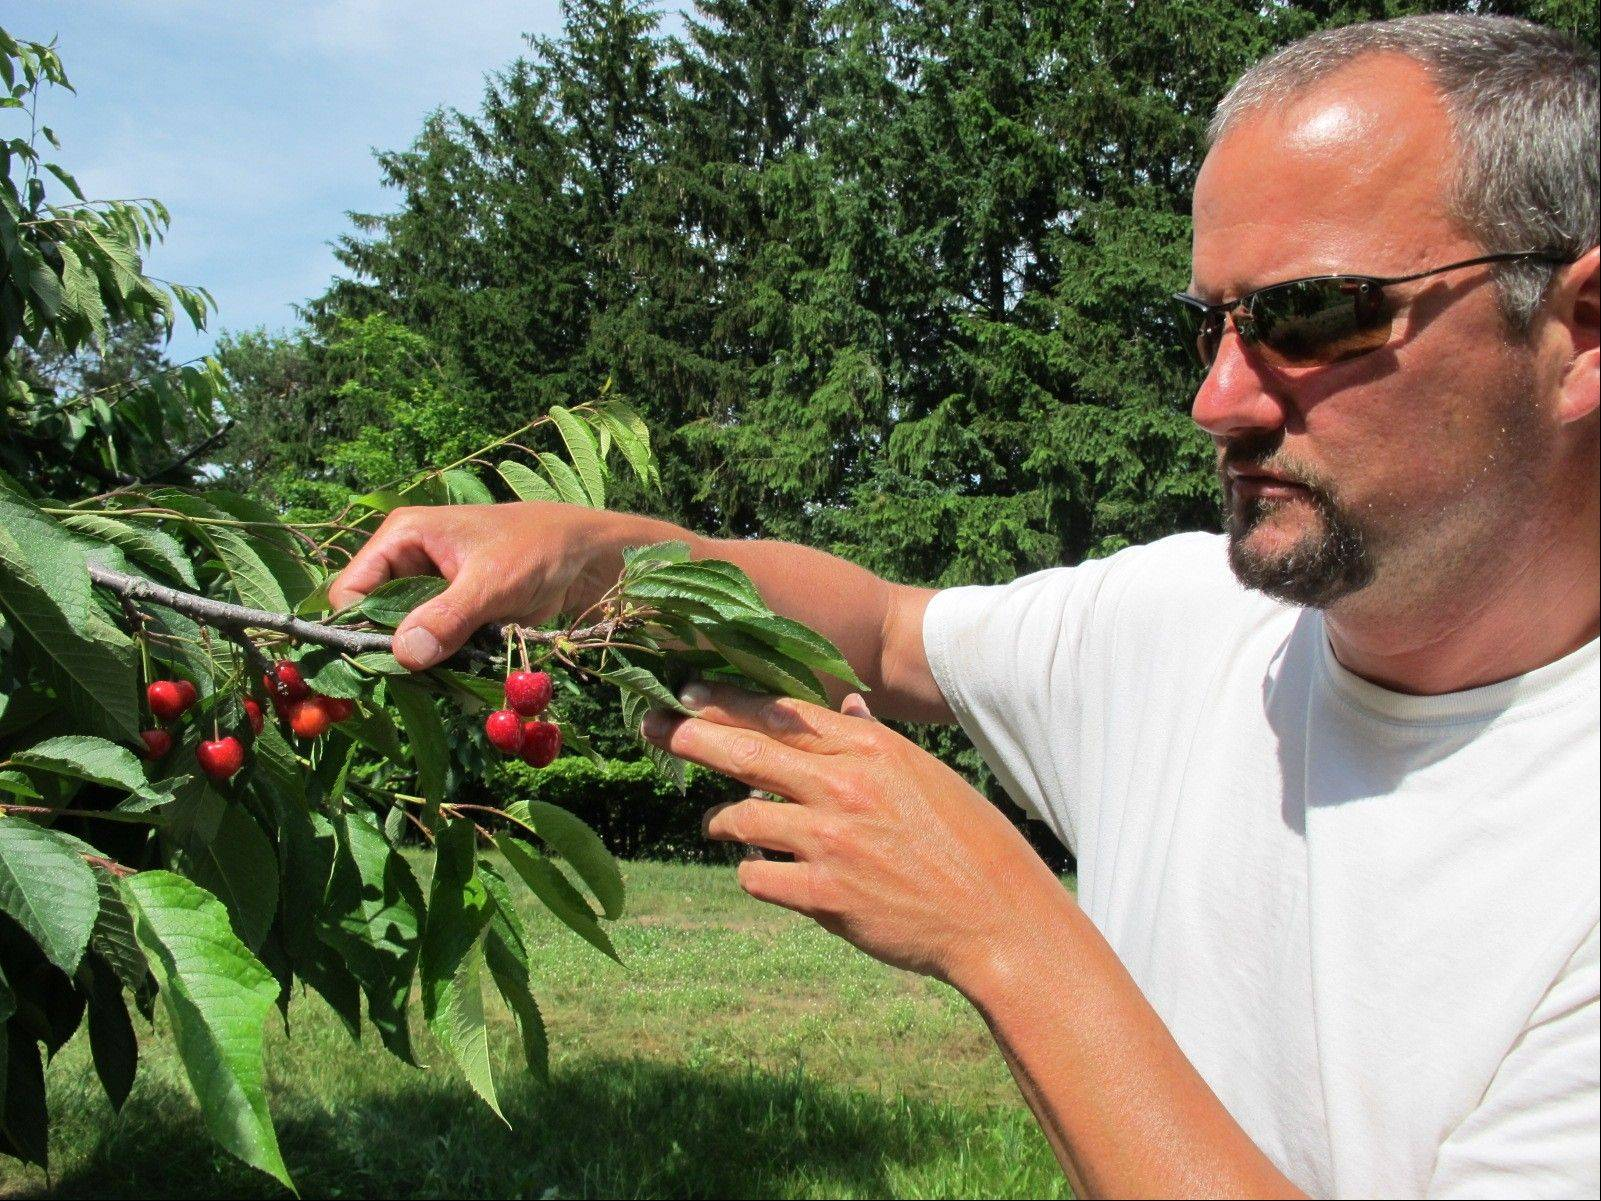 Associated Press In this June 28, 2013, photo Patrick McGuire of Atwood, Mich., examines sweet cherries growing in his orchard. McGuire says a labor shortage caused by the immigration controversy is making it difficult for him and other Michigan fruit growers to harvest their crops.